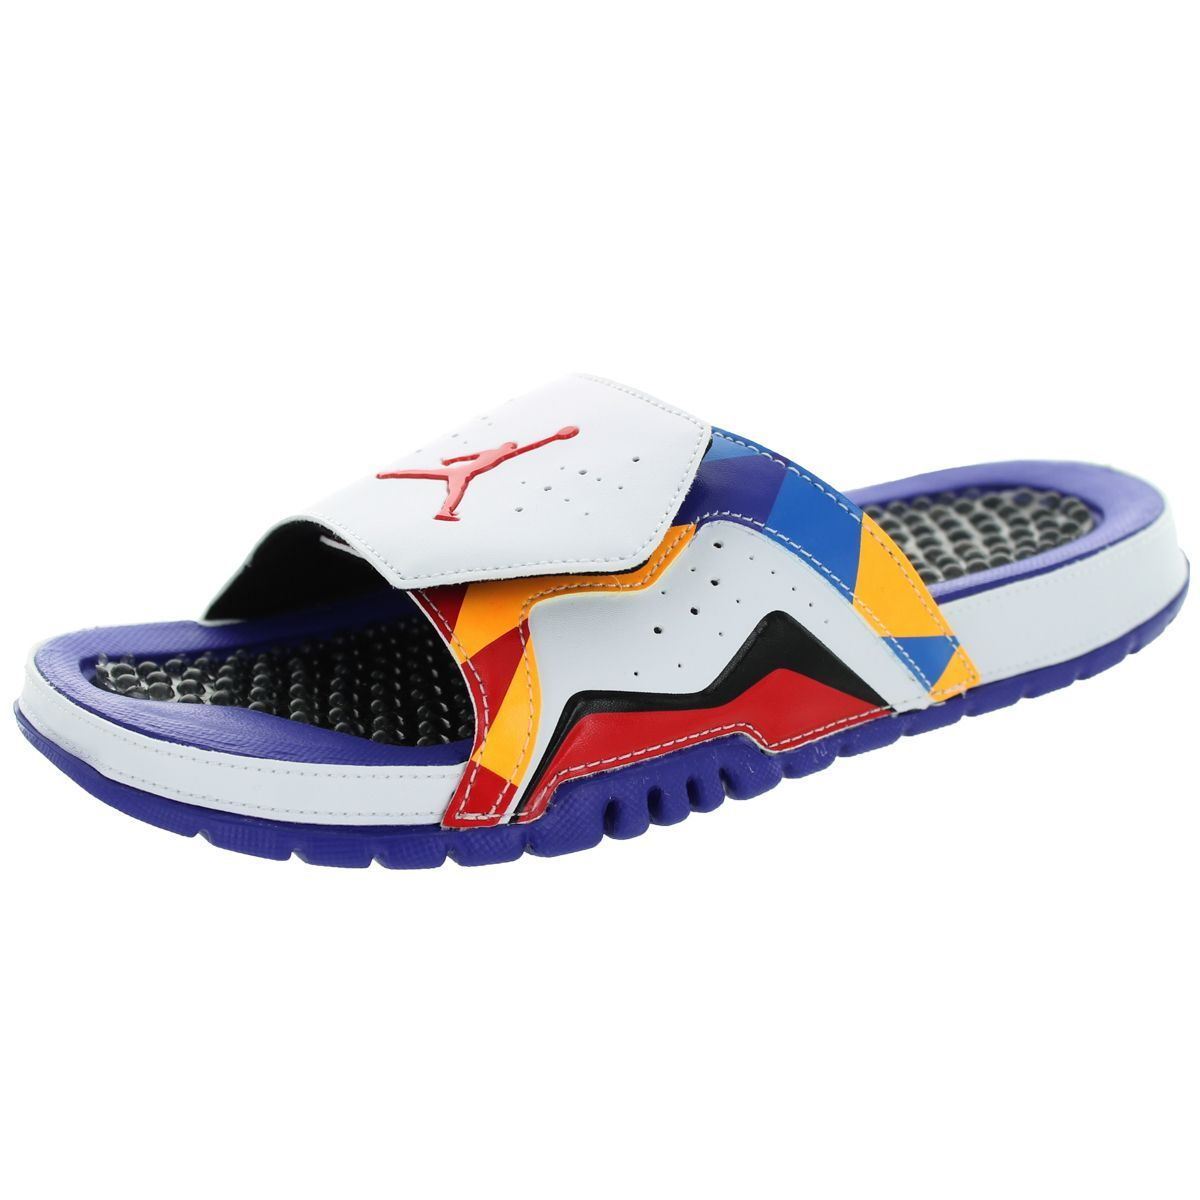 7c7225526 Nike Jordan Men s Jordan Hydro Vii Retro White University Red d Lsr ...